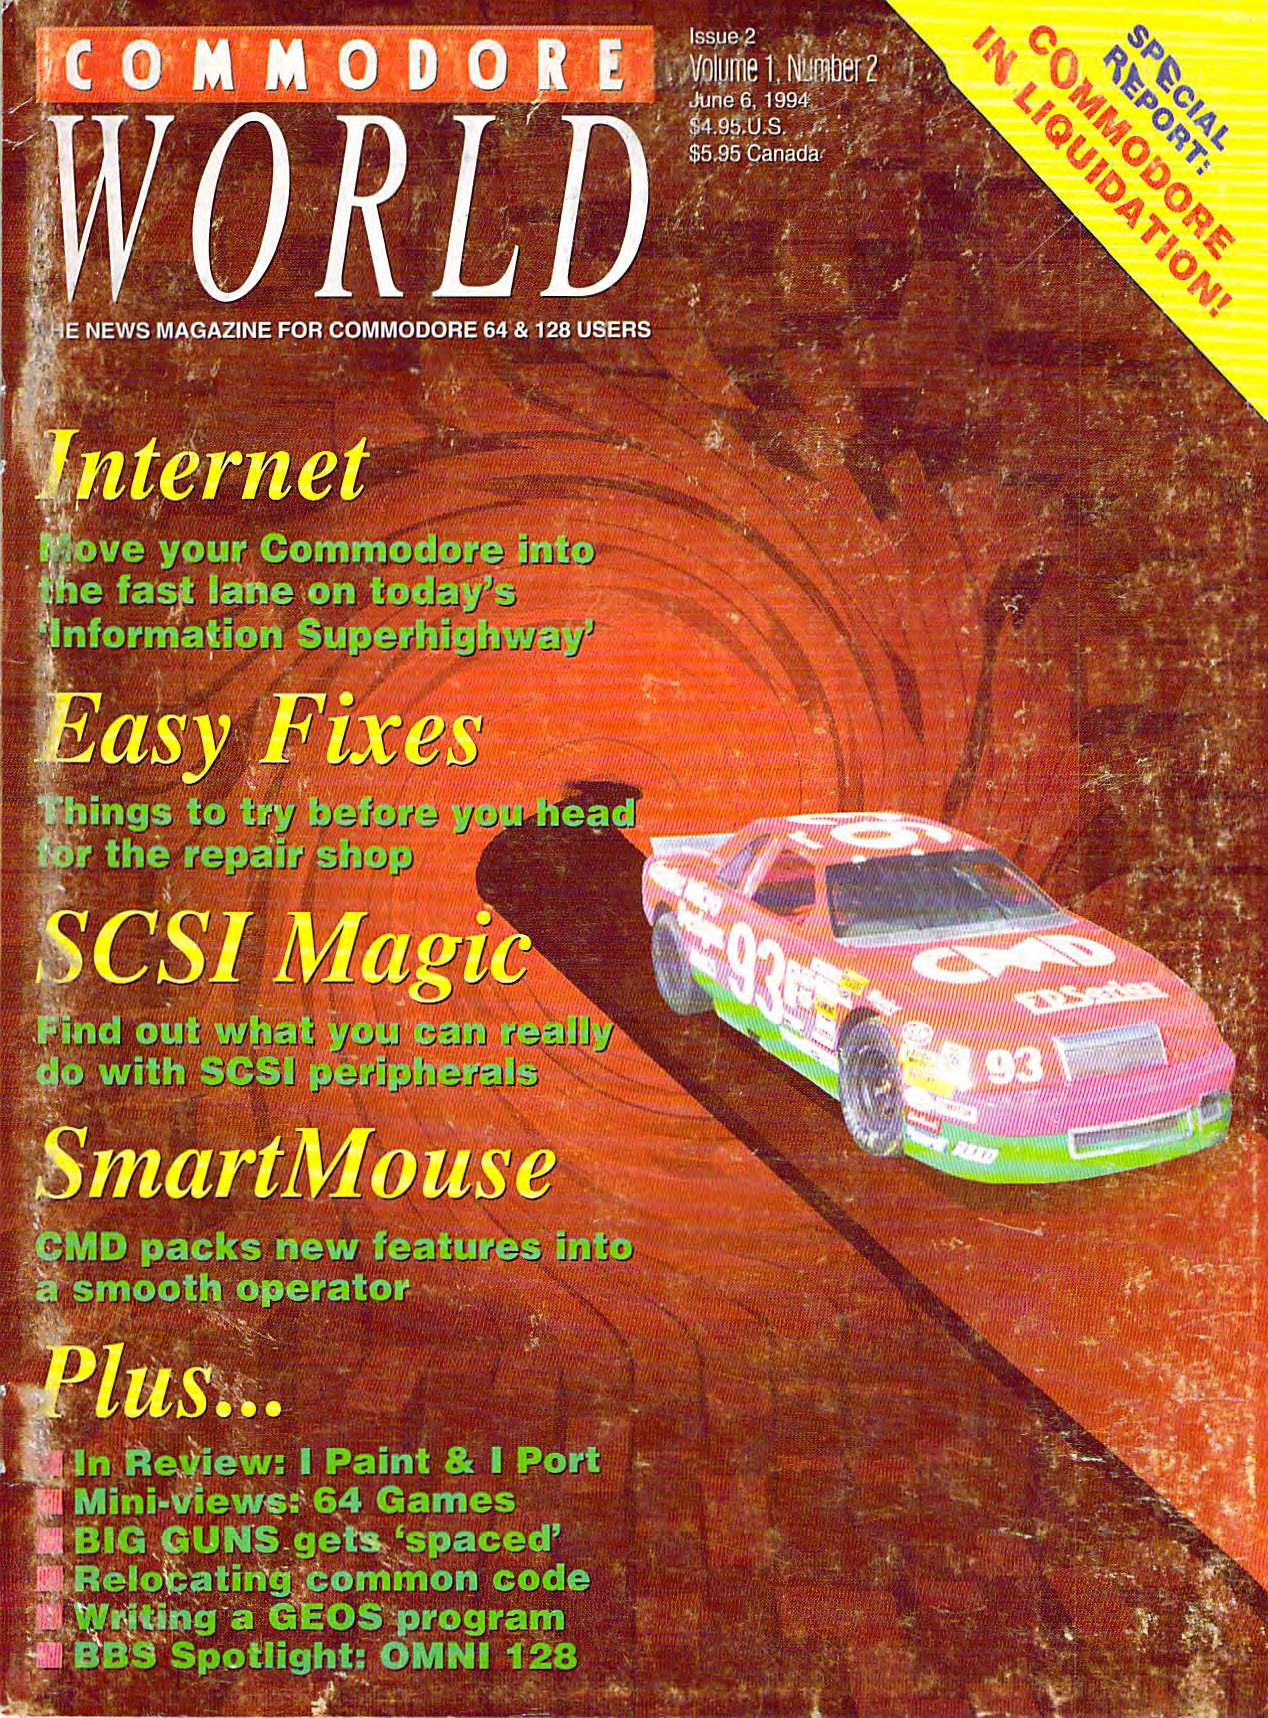 commodore_world_issue_02-01